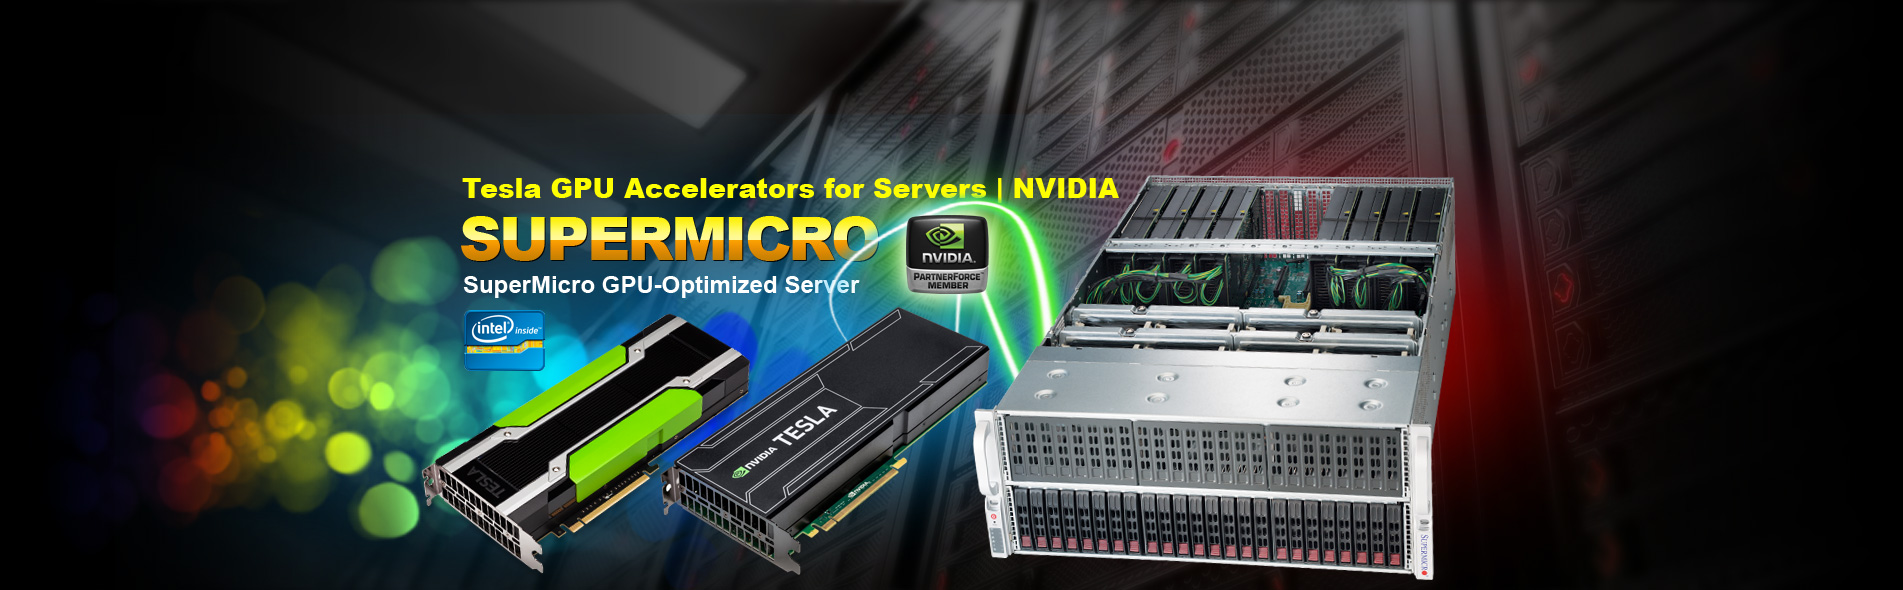 Supermicro Servers, Data Storage & Solutions - Superxpert